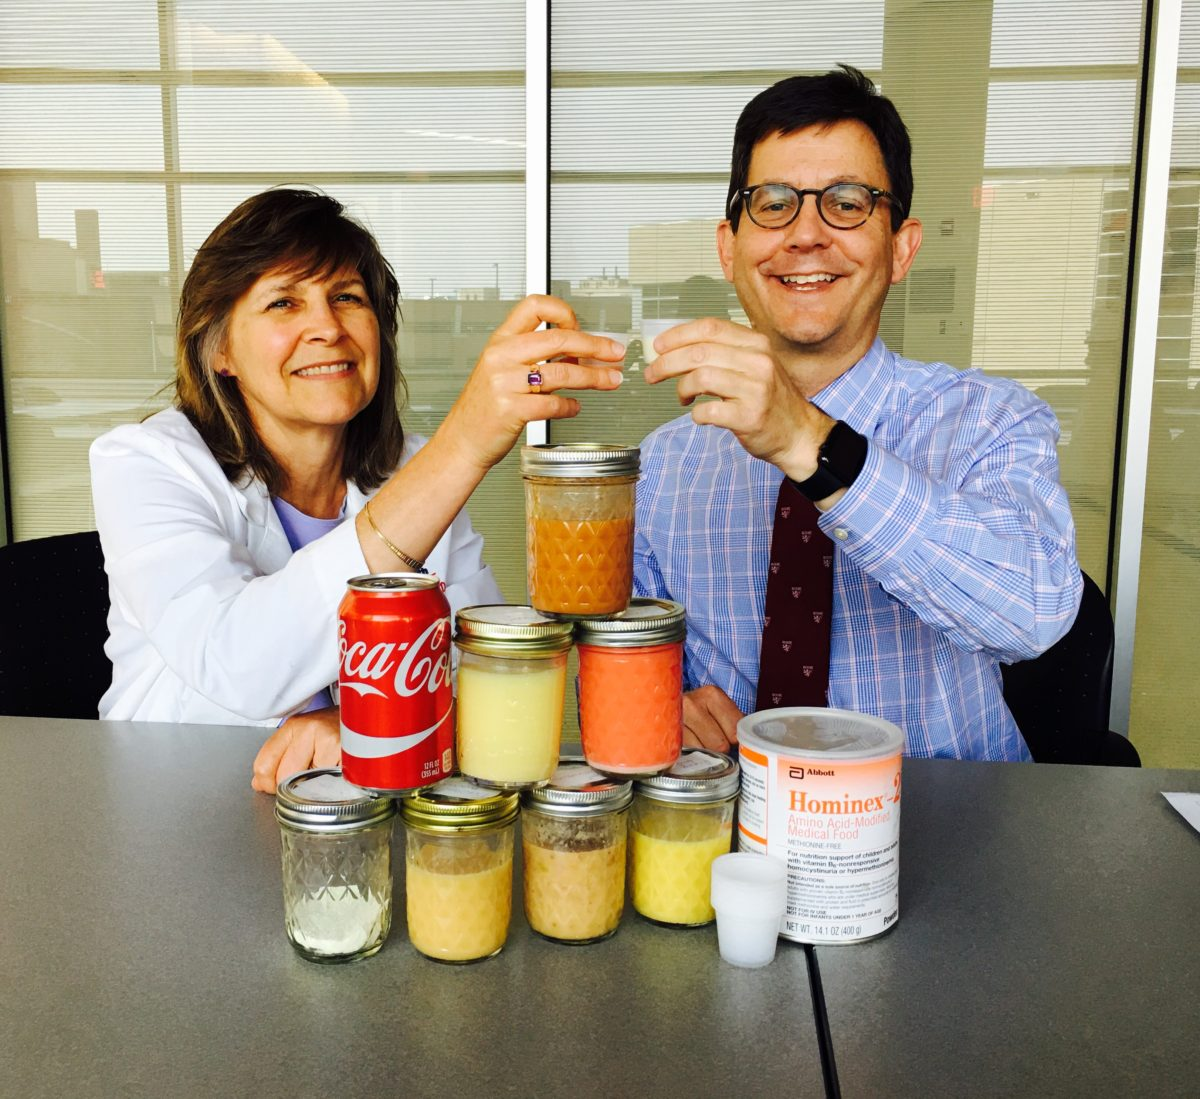 Lisa Davis, RD and Vincent Cryns, MD taste testing the medical food lacking methionine